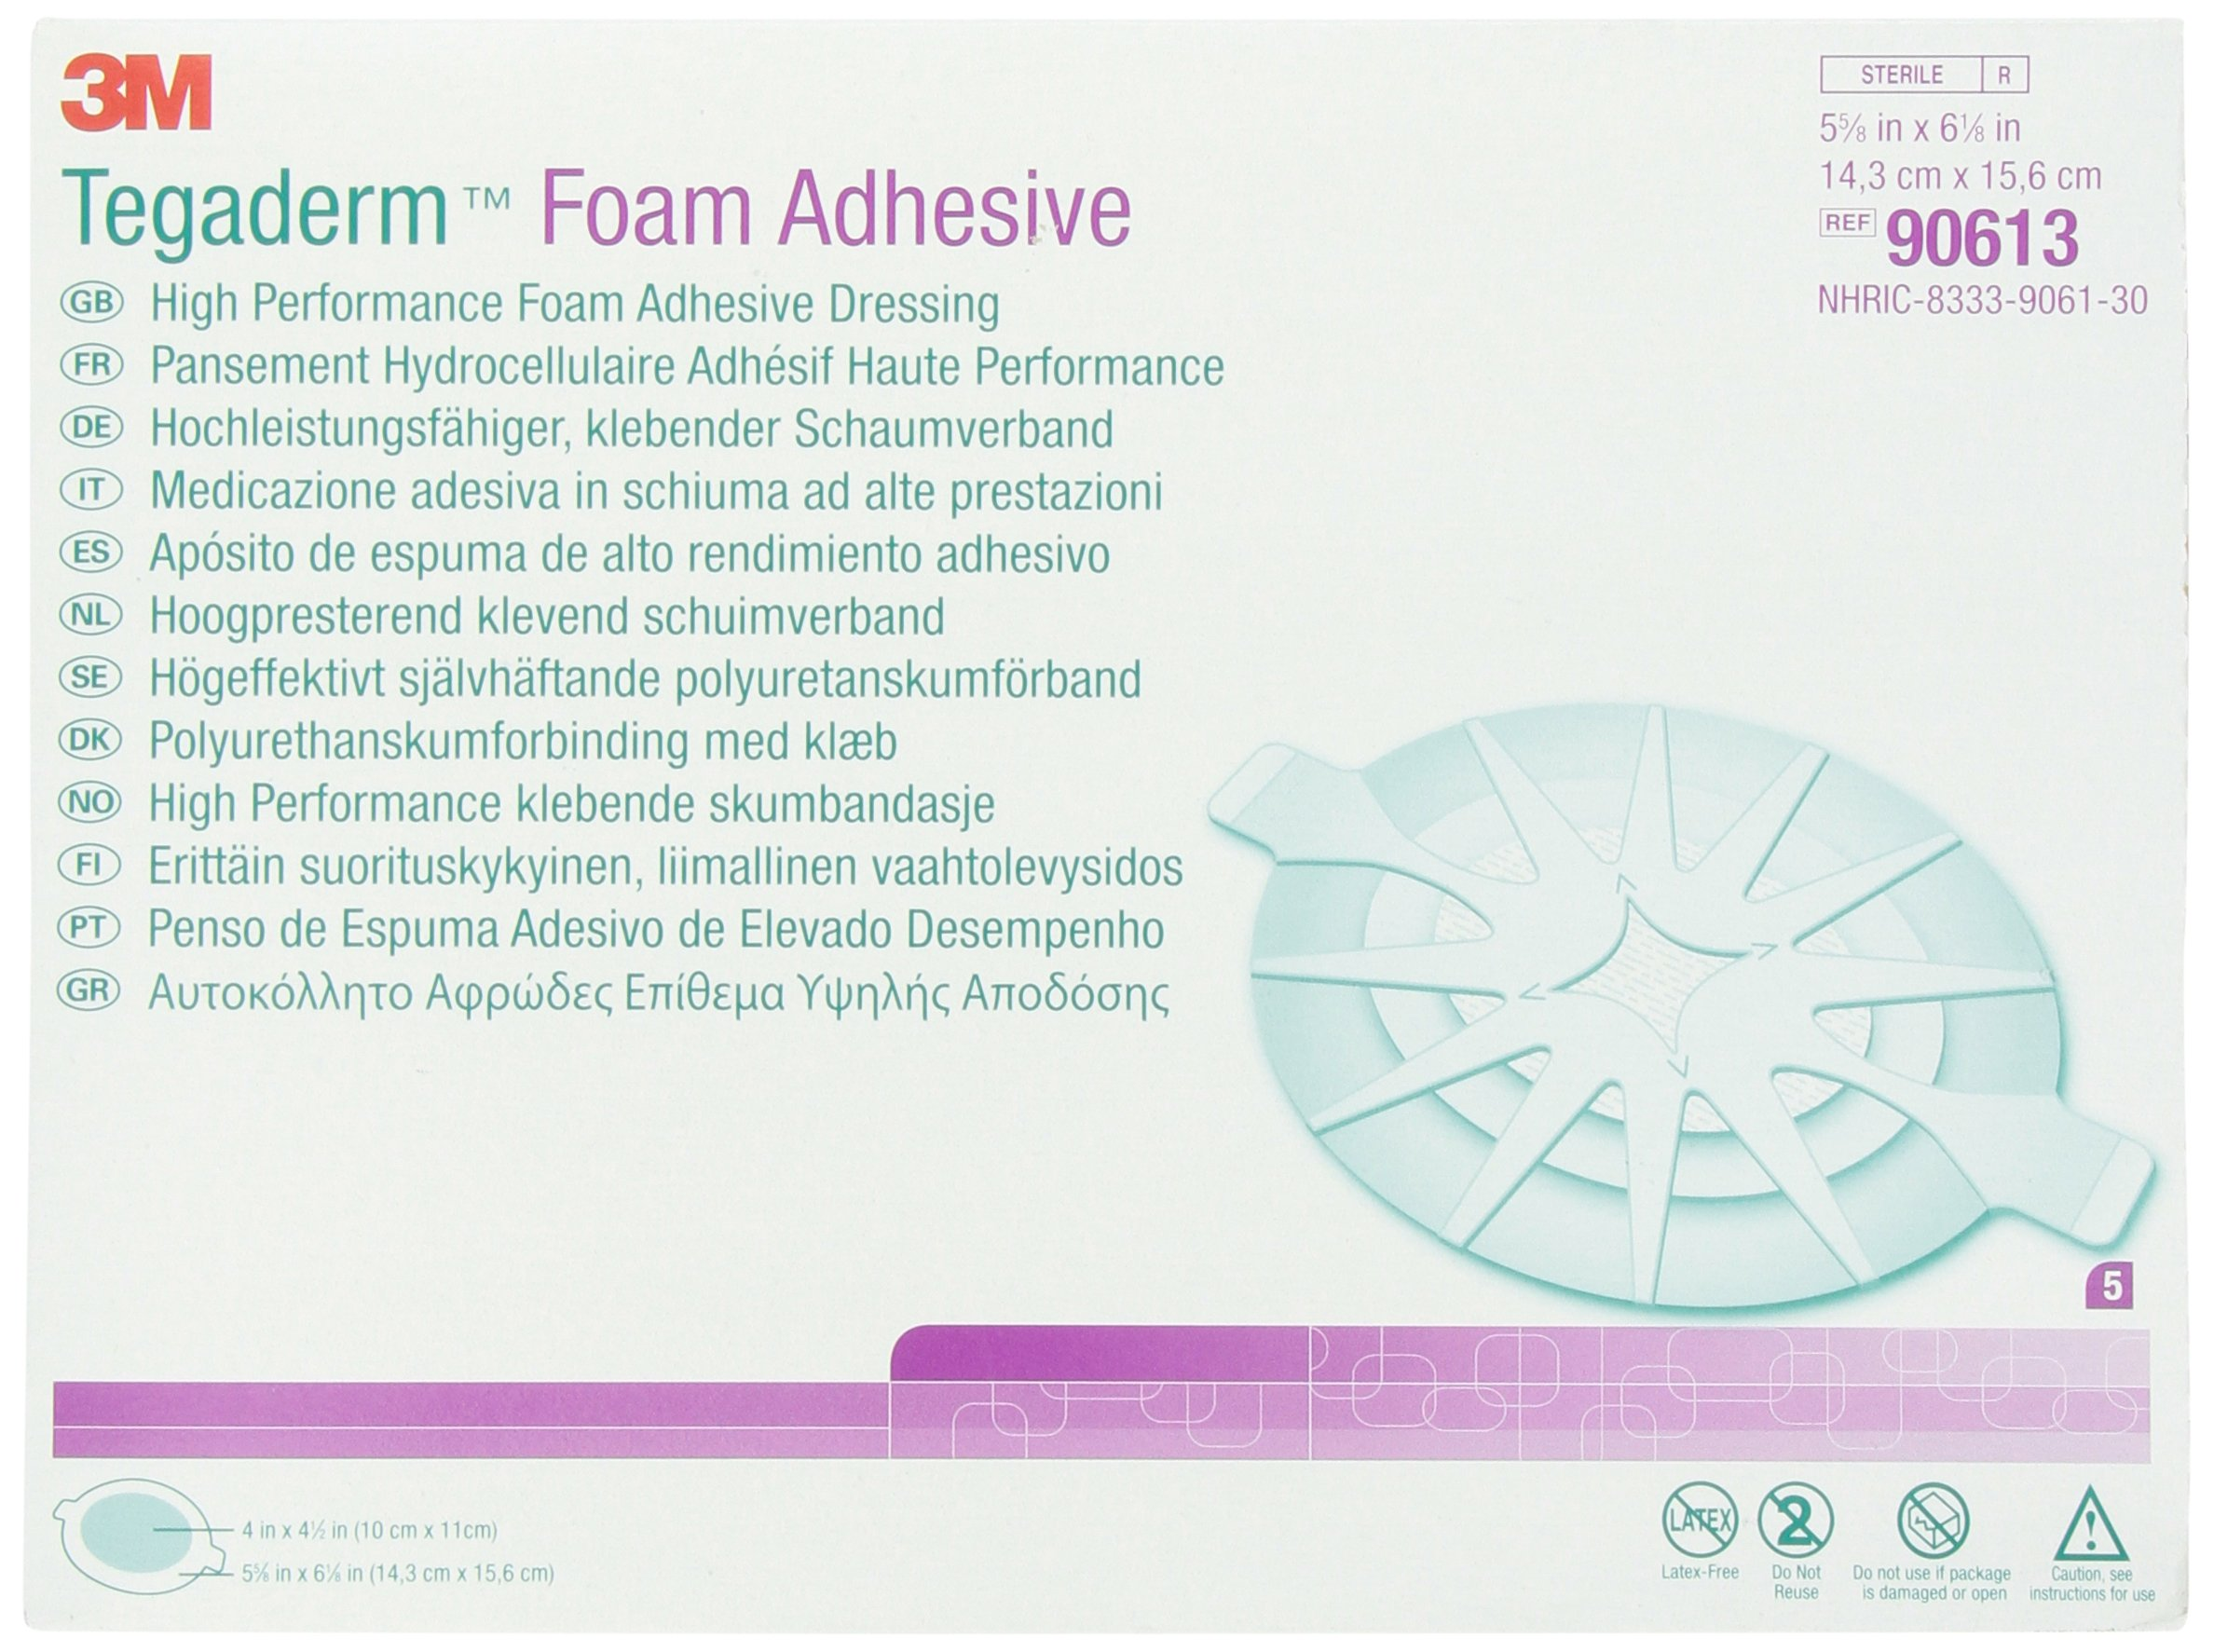 3M Tegaderm™ Foam Adhesive Dressing 5 5/ 8'' x 6 1/ 8'' (8890613) Category: Specialty Dressings Woundcare Products